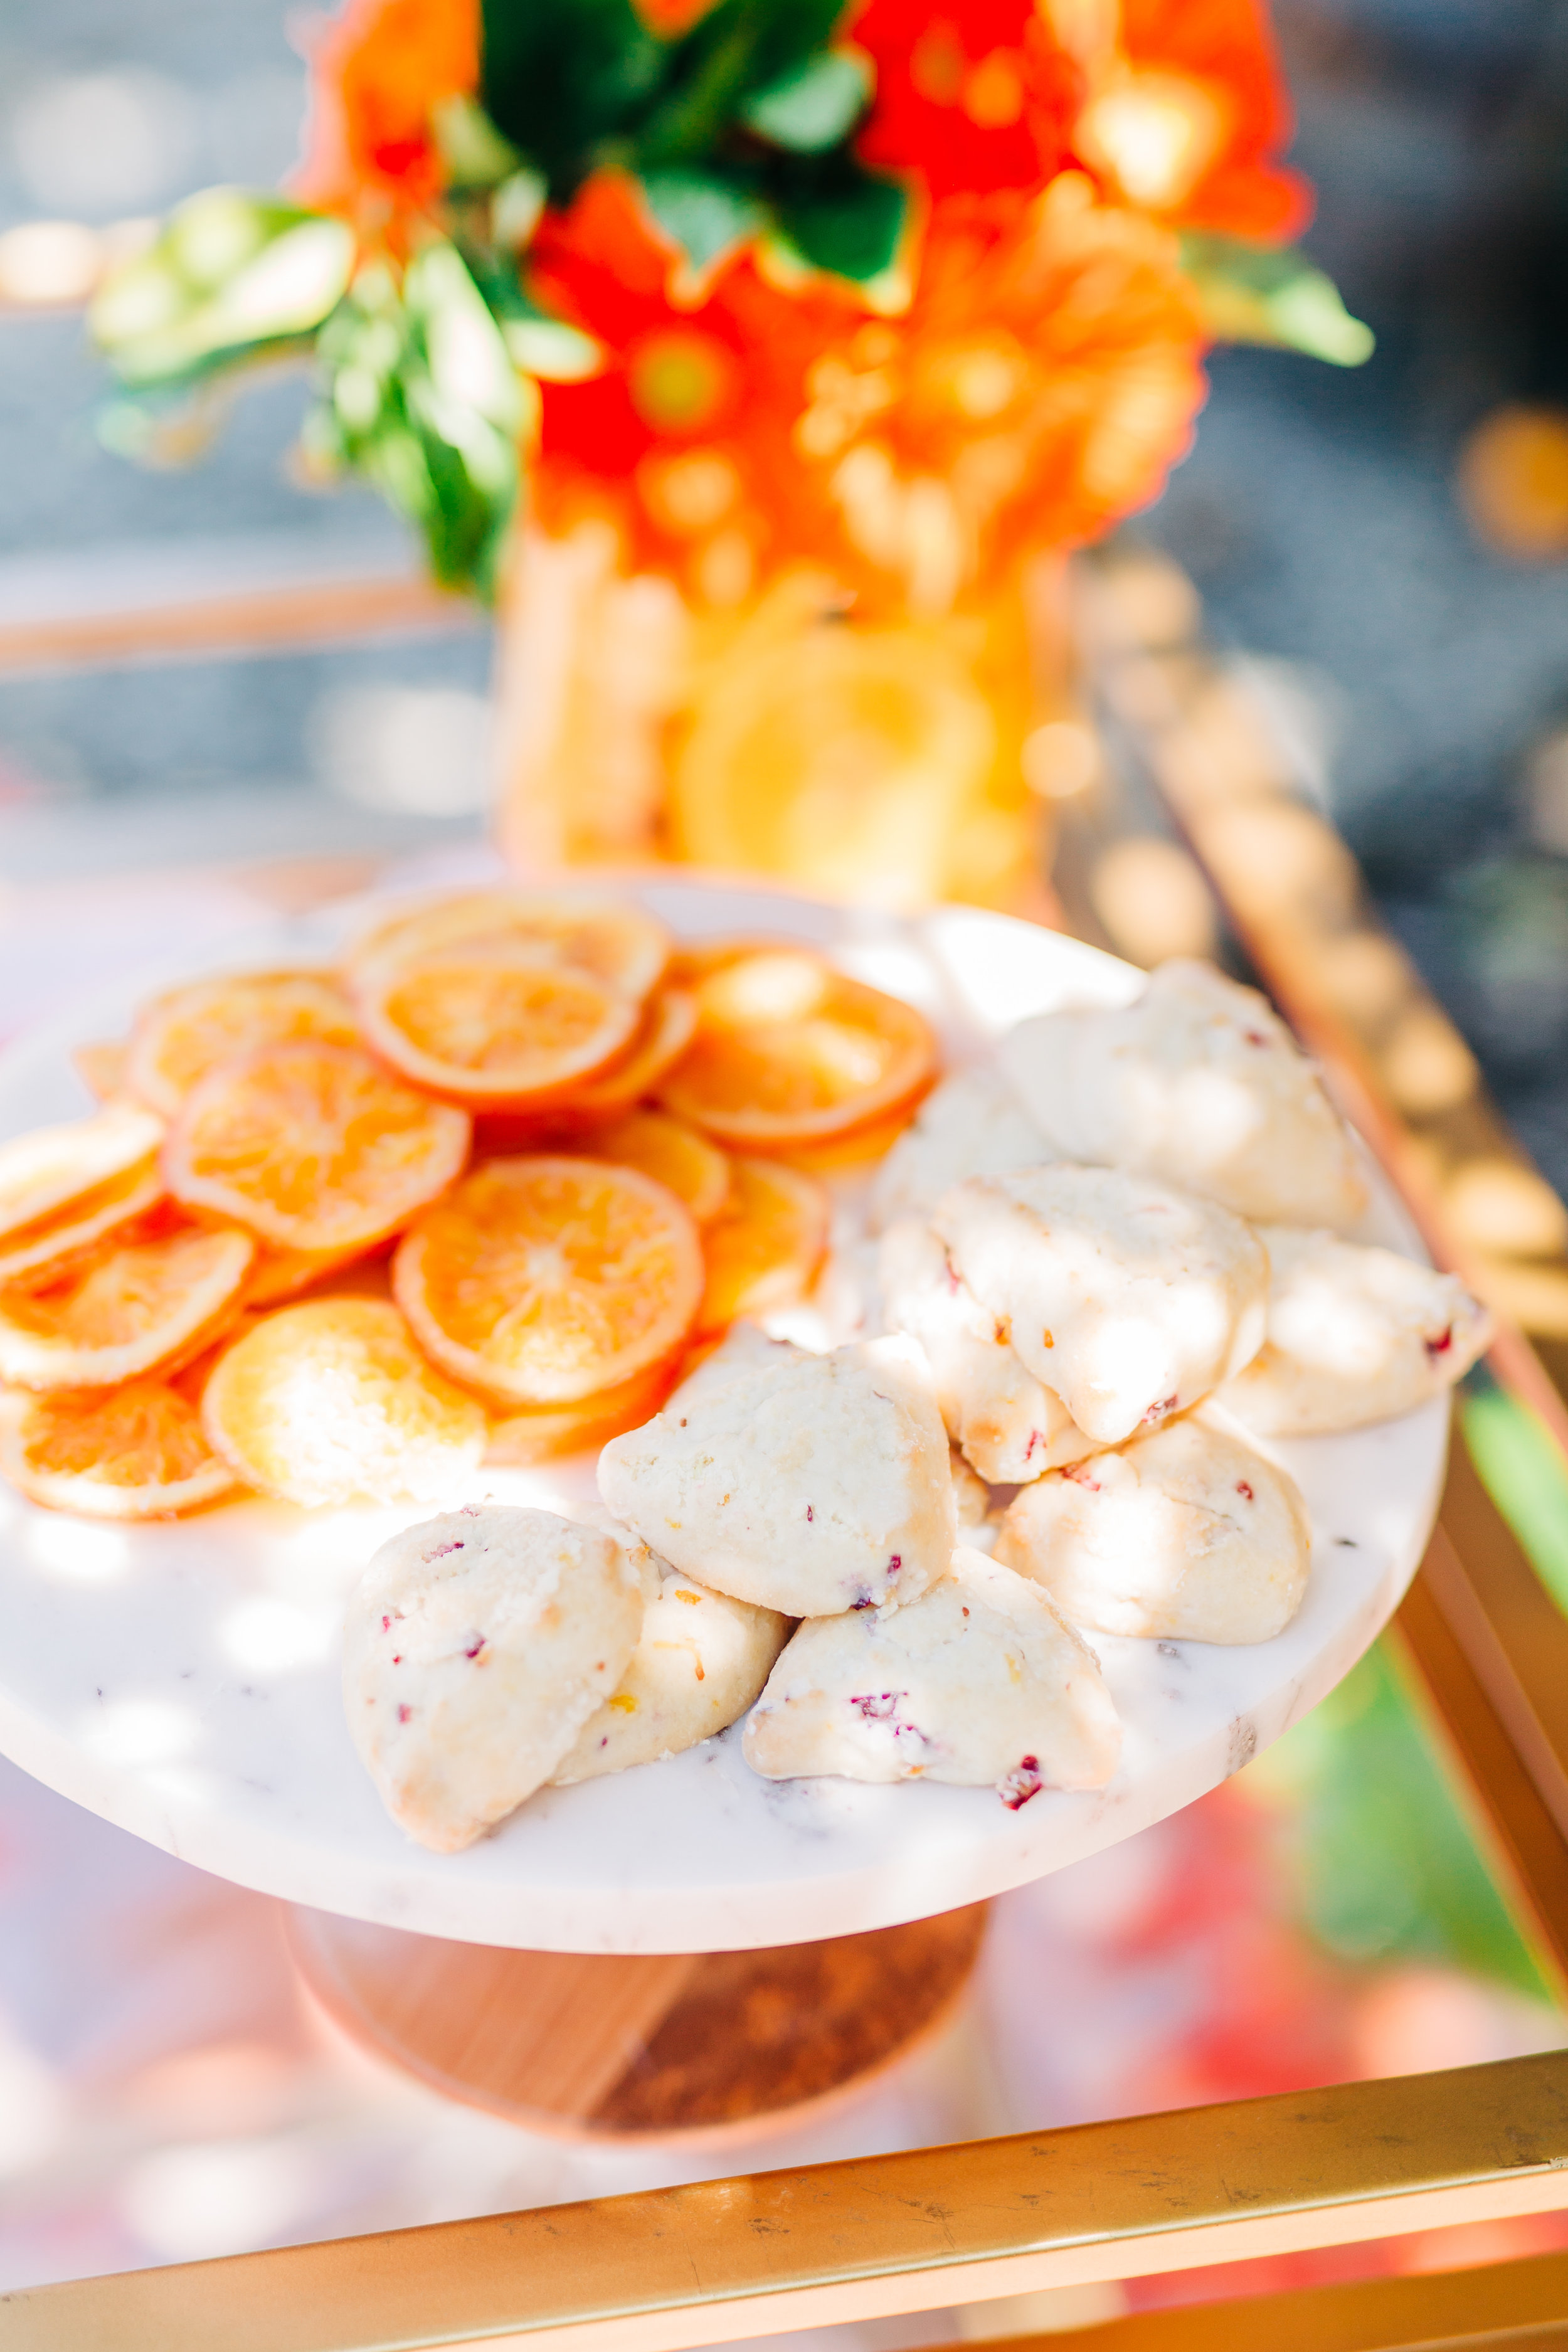 Bar cart decorations for orange picking party. Candied oranges and orange scones8.jpg